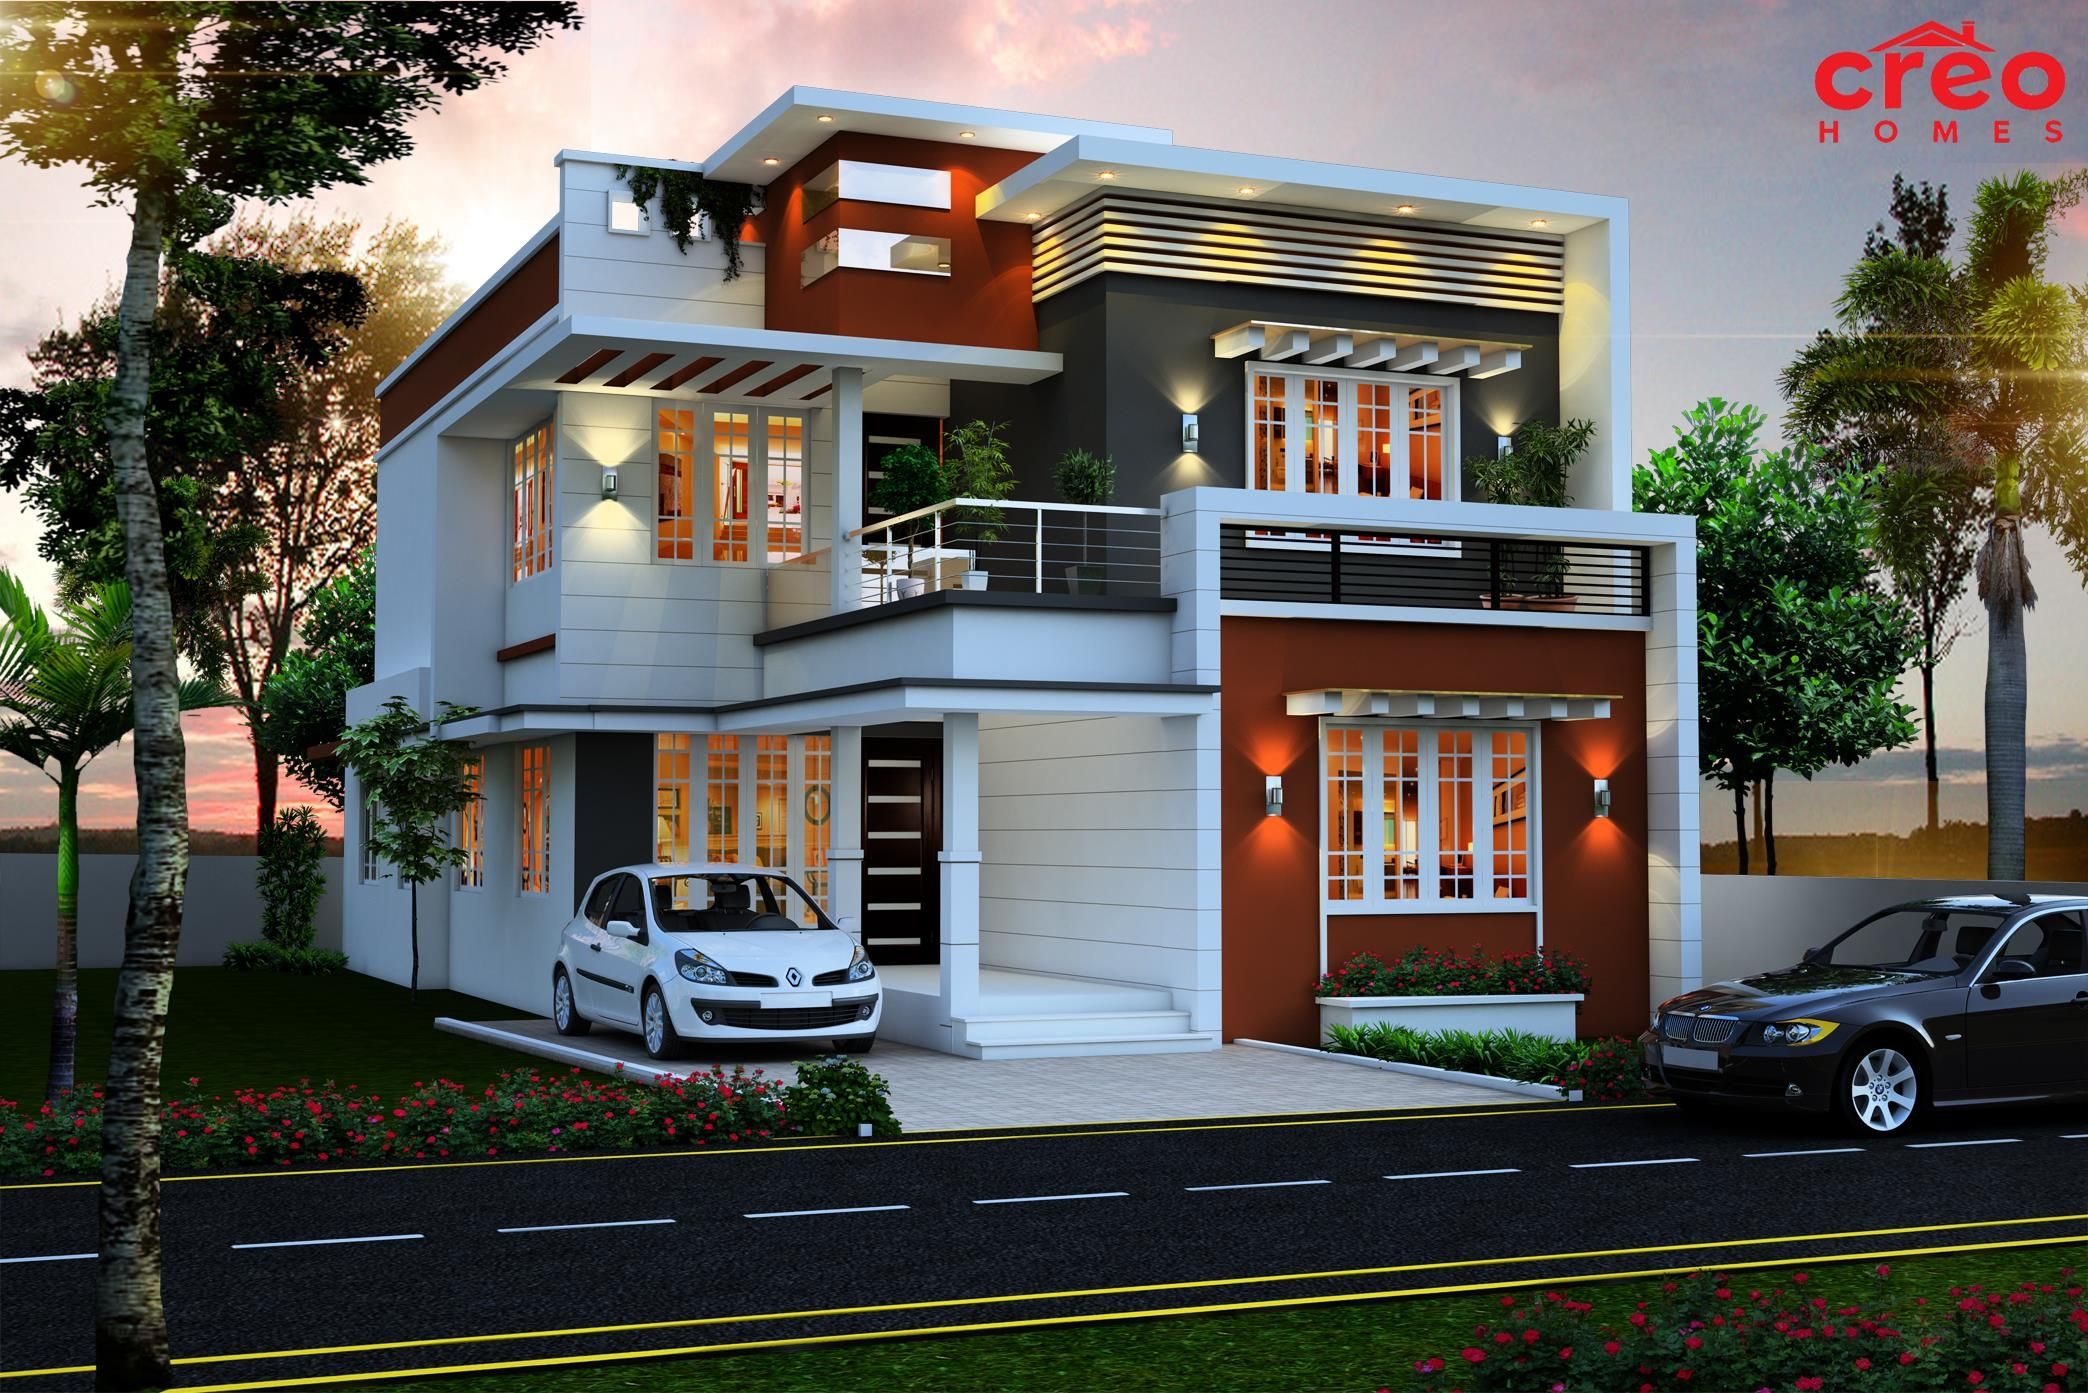 c078cc025ea190e877a8eb61ec50caa9 - 14+ 20 Foot Front Elevation Small House Single Floor House Front Design Images